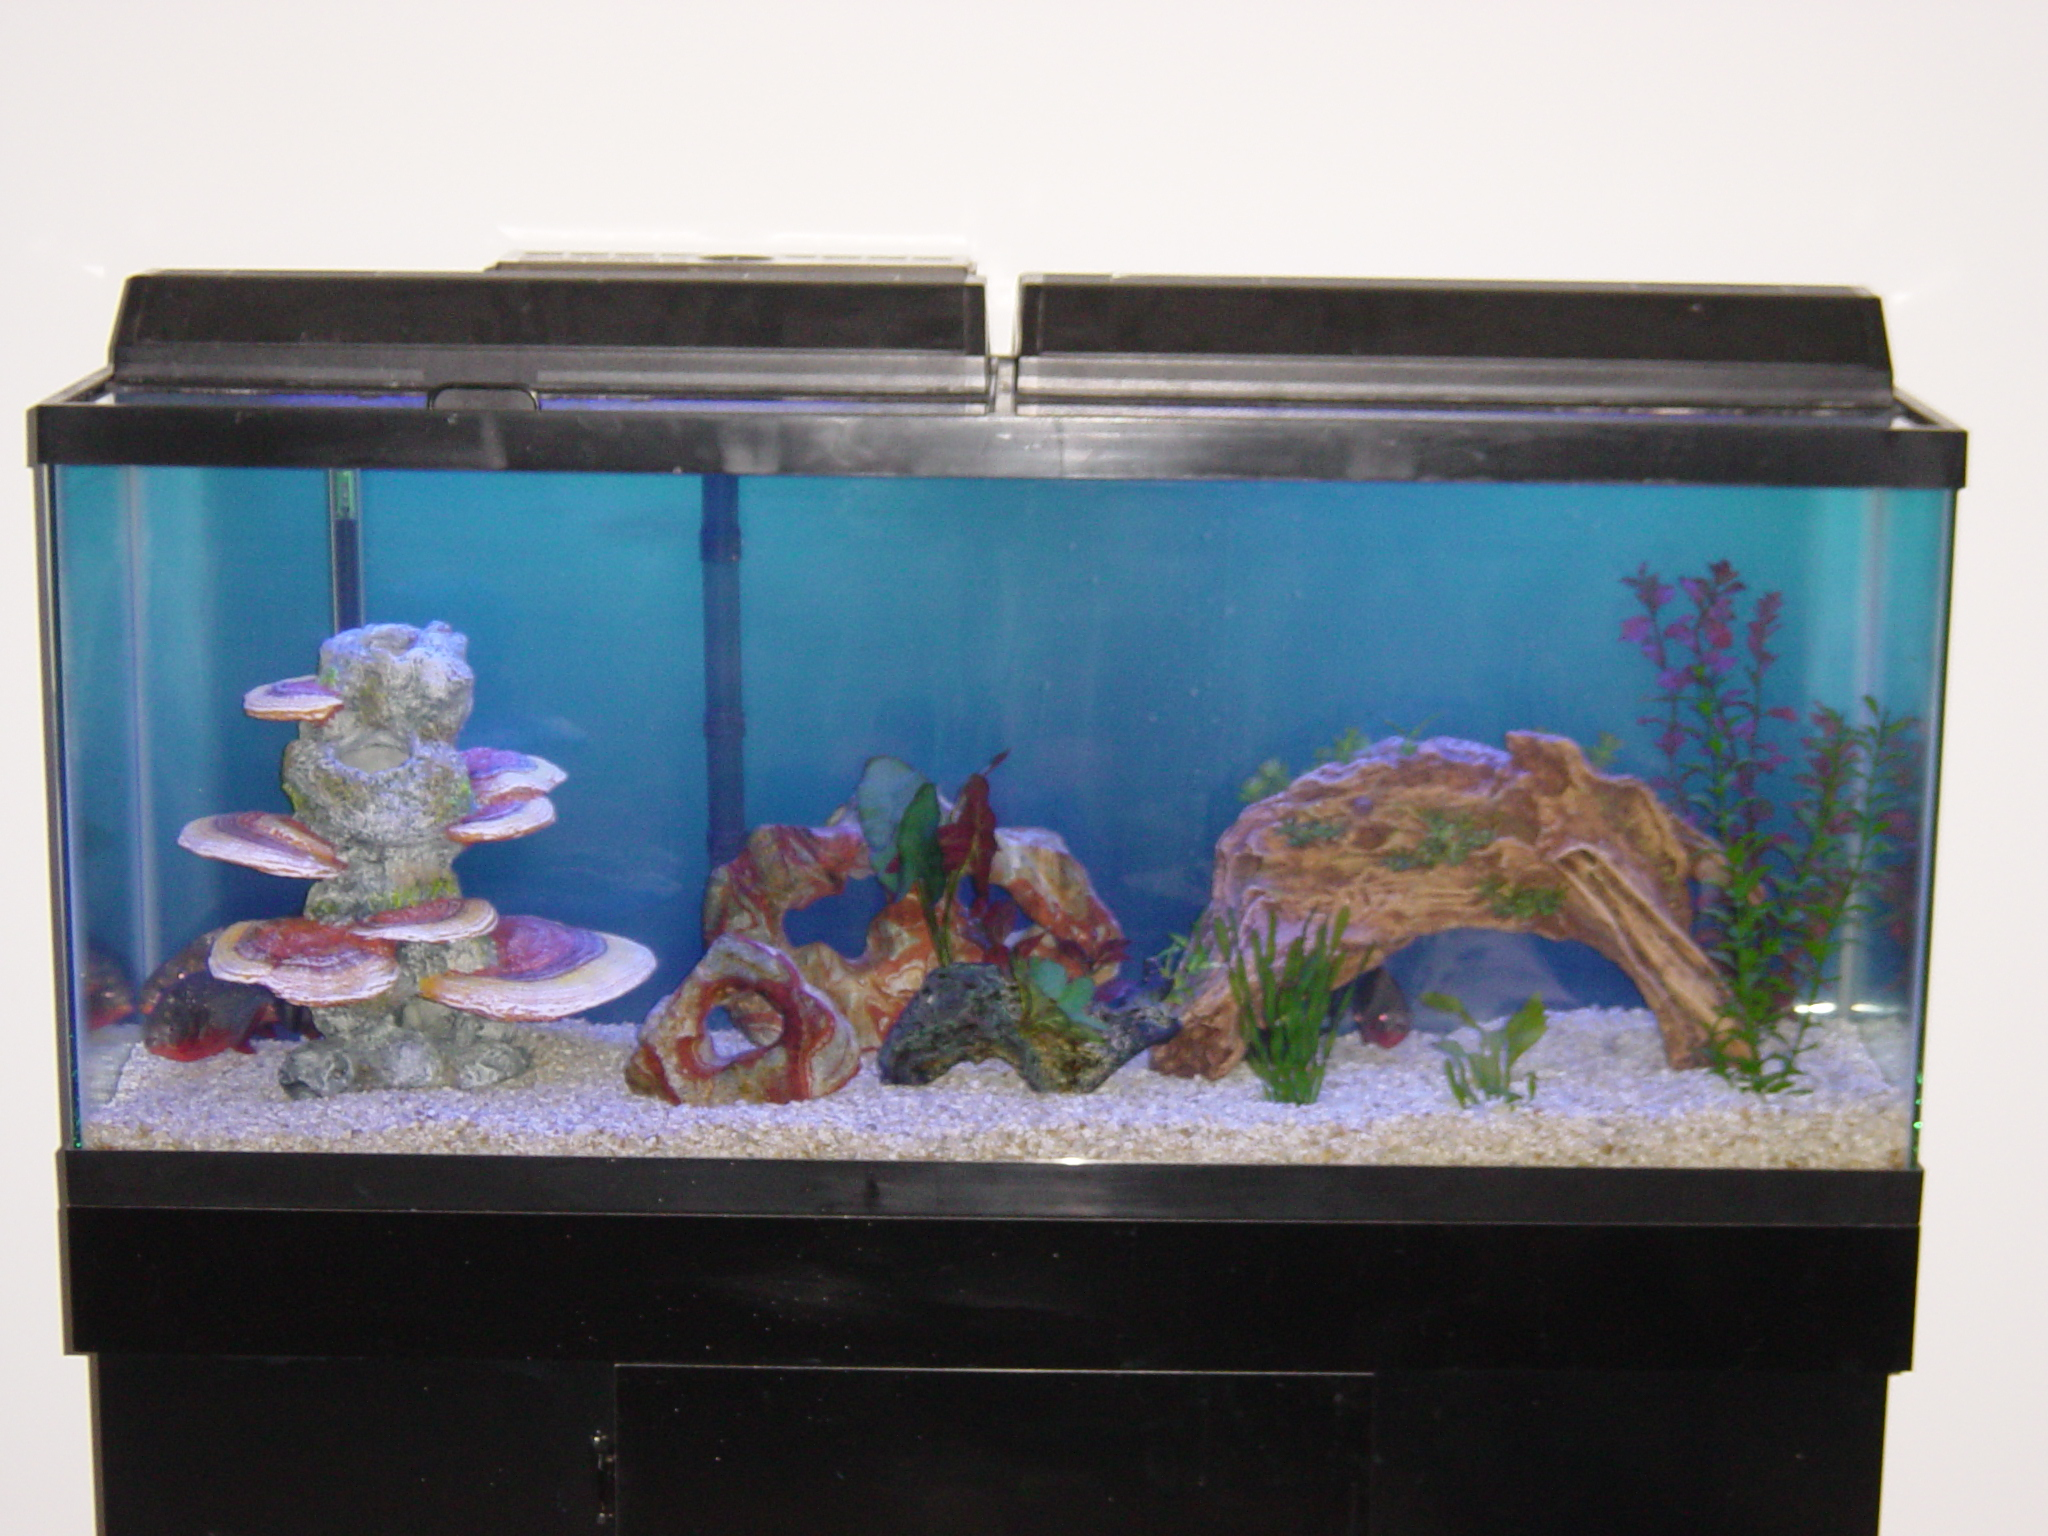 55 Gallon Fish Tank Tall 55 Gallon Aquarium Set 80 In